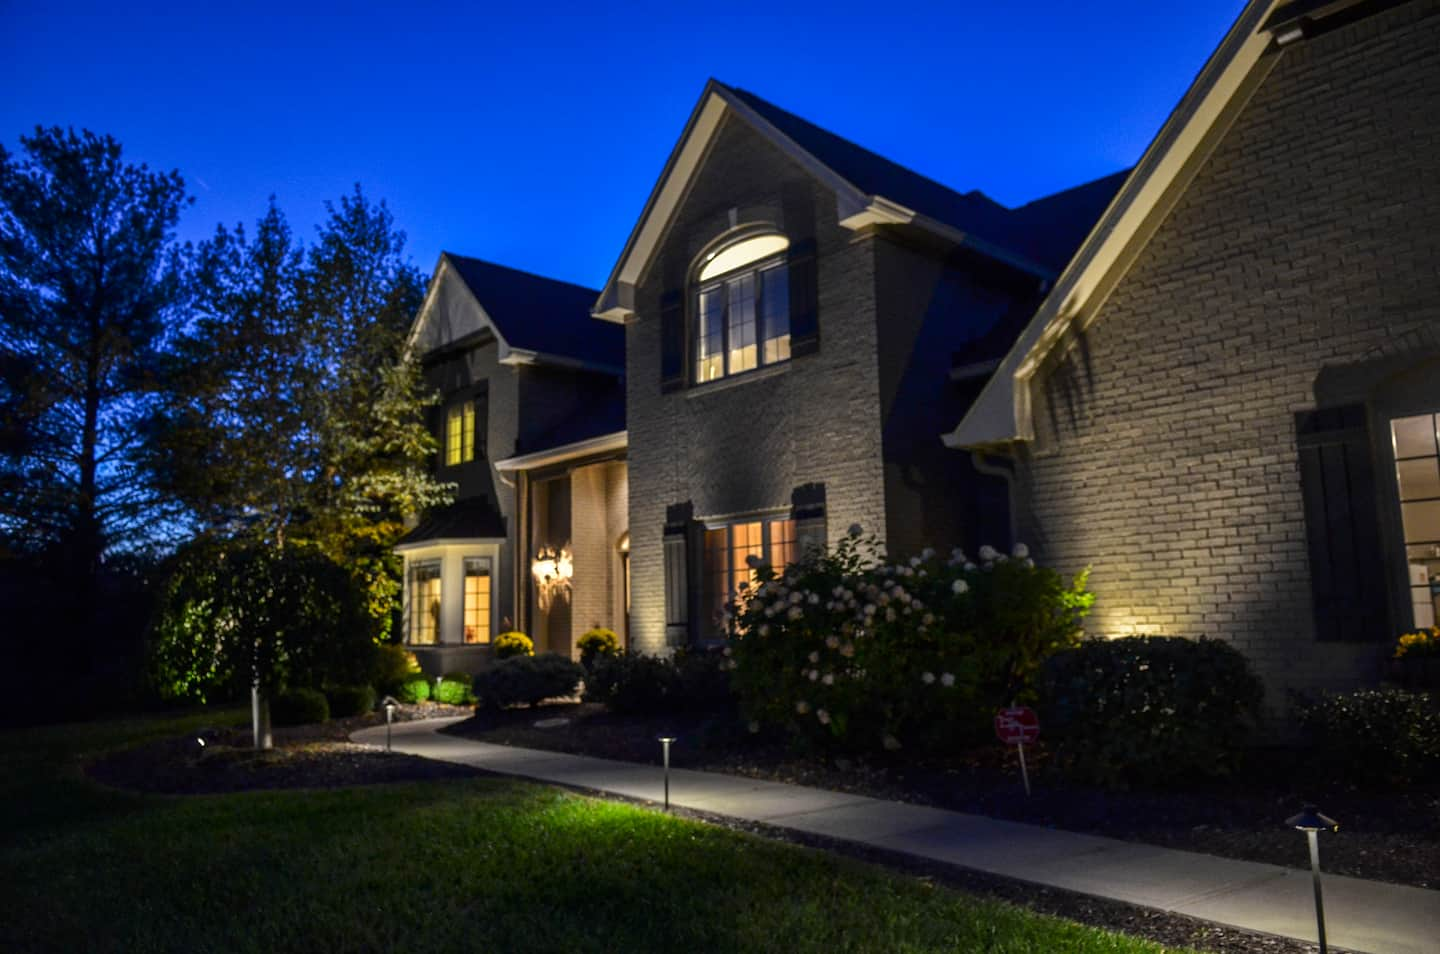 Awesome Outdoor Lighting In Front Of Indiana Home And Pathway